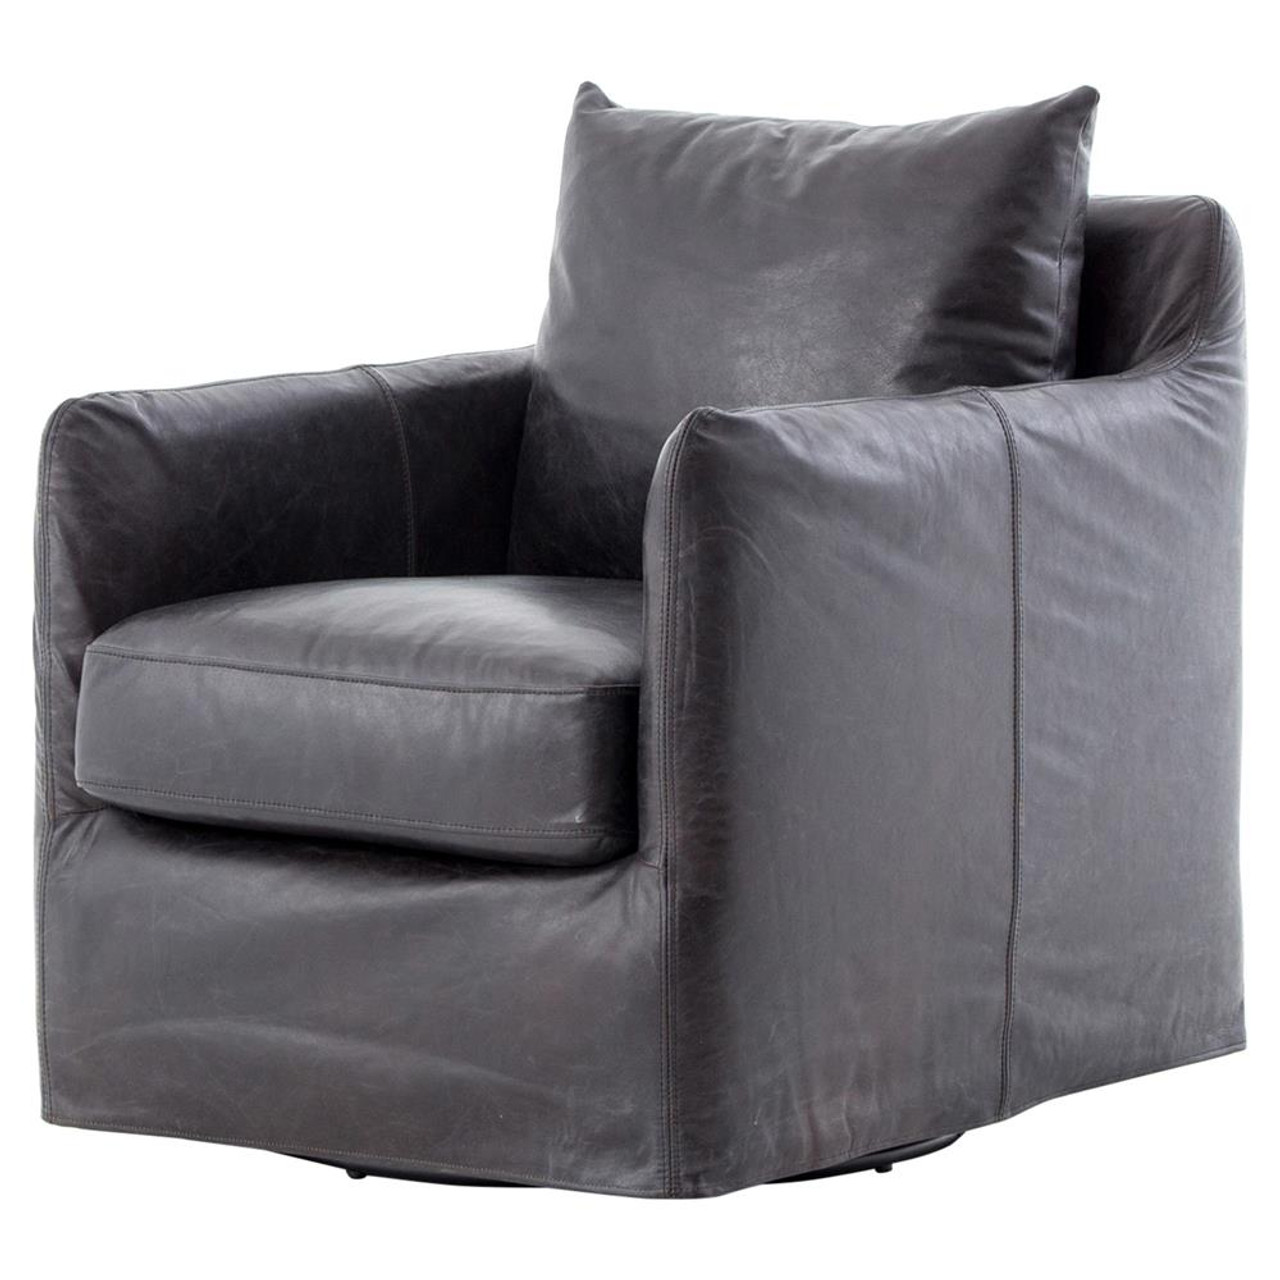 swivel club chair ergonomic with no wheels banks slipcovered black leather zin home